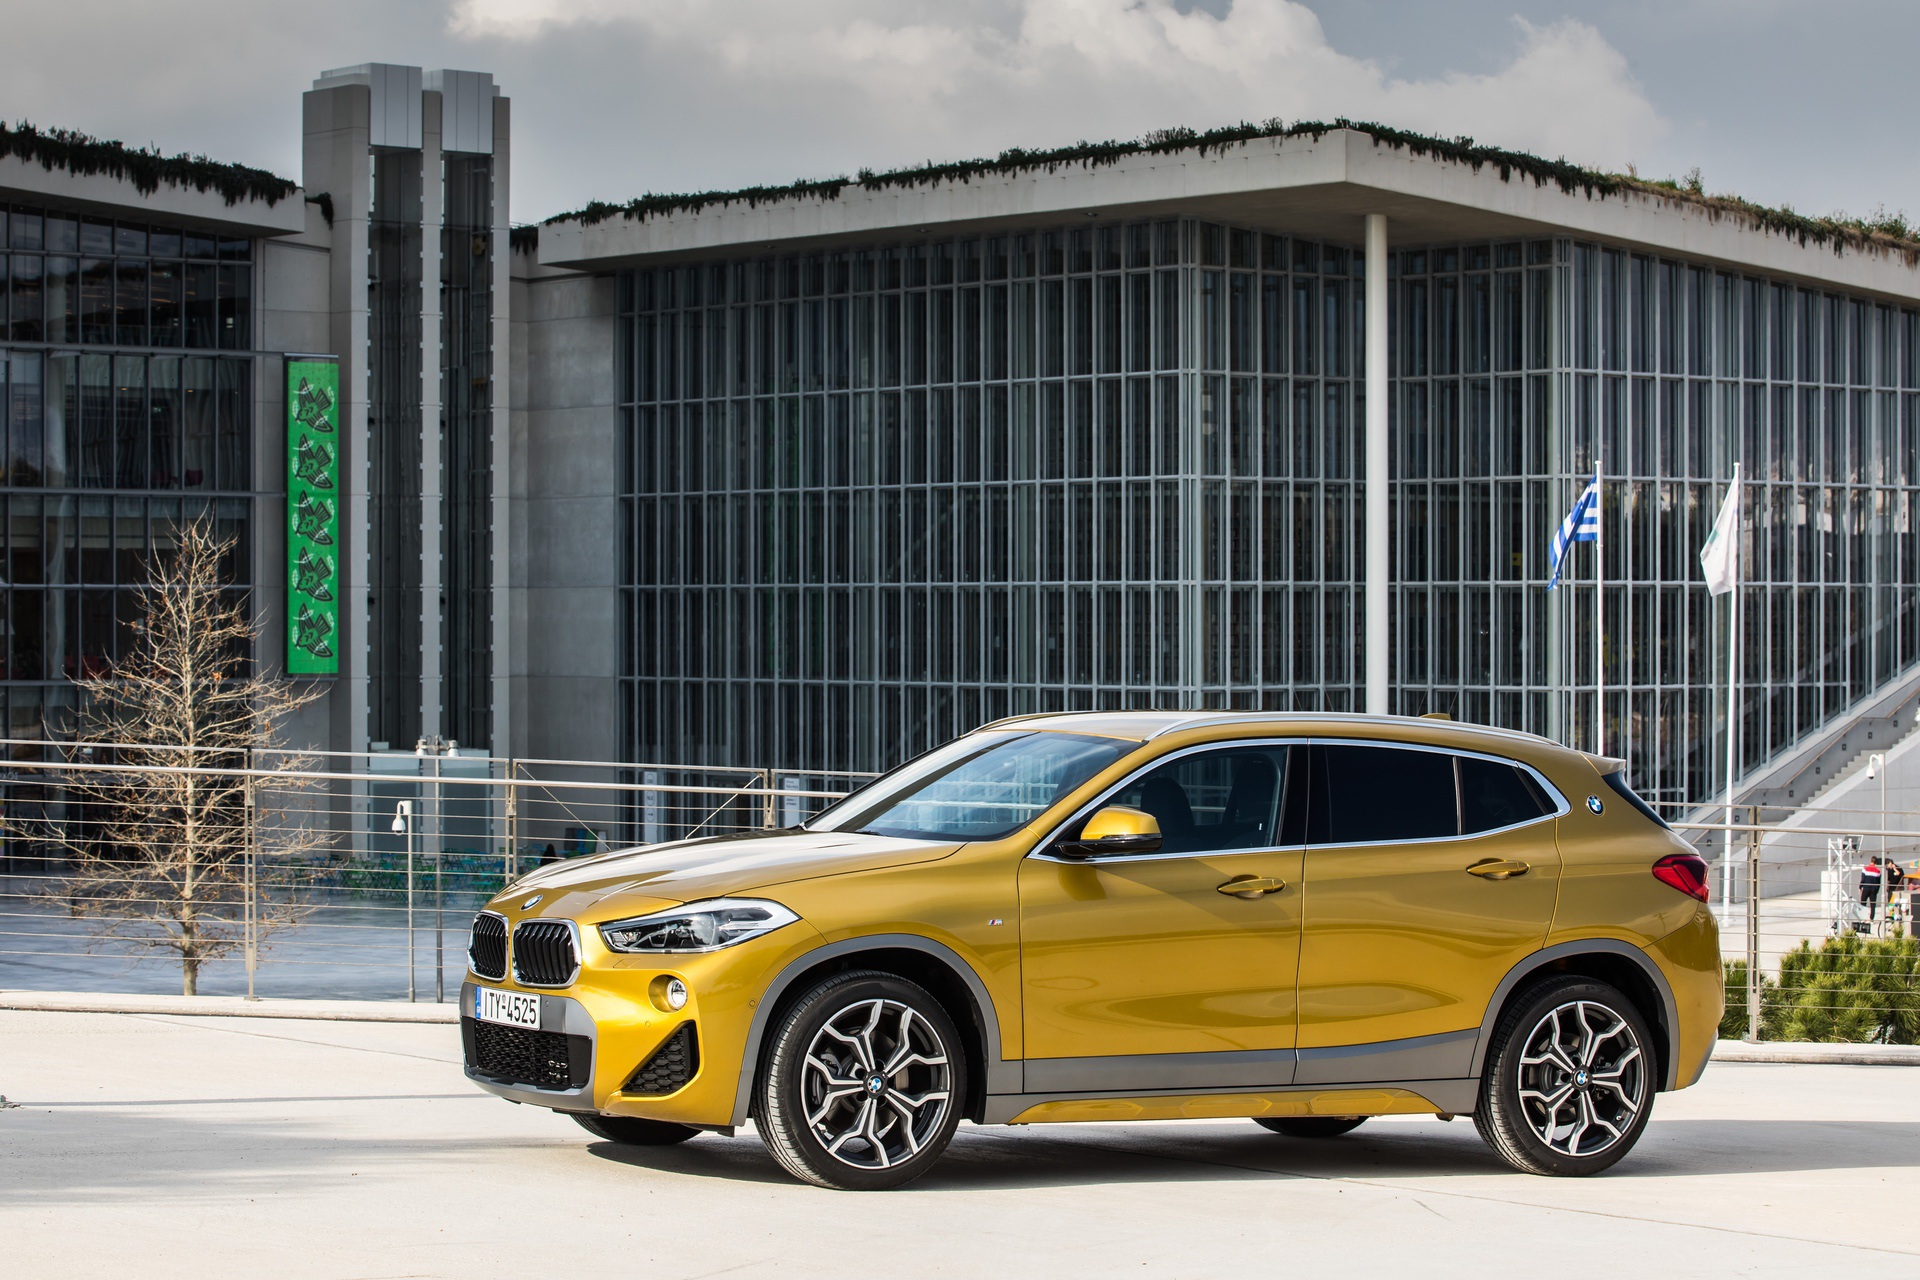 BMW_X2_Greek_presskit_0058